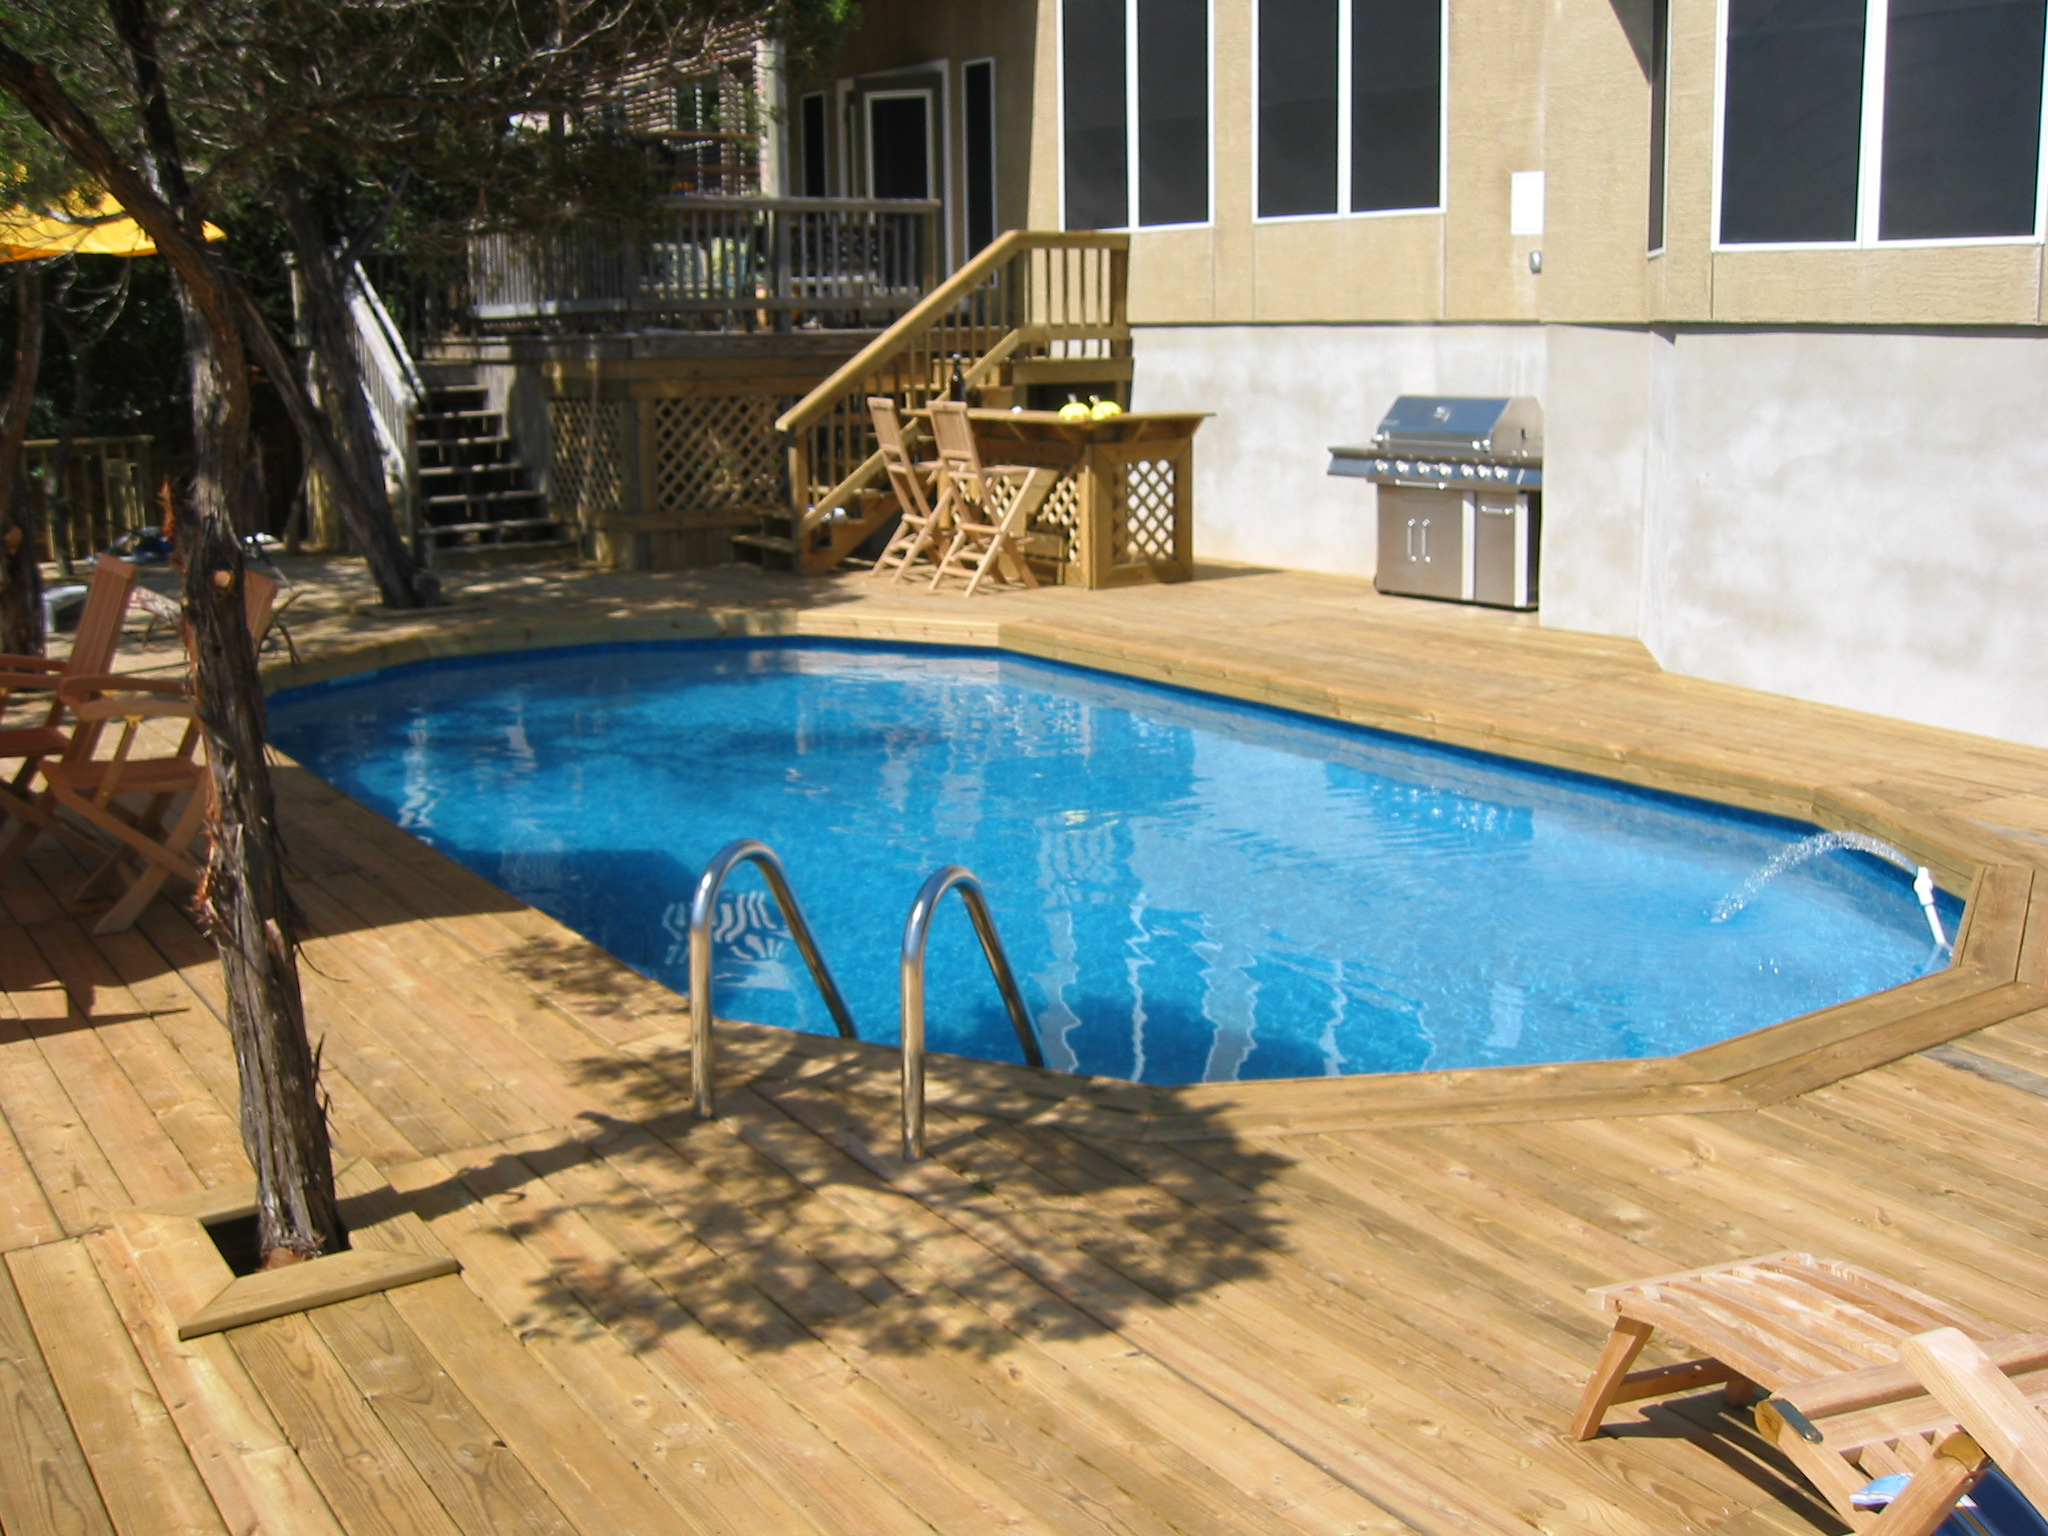 decked oval above ground pool san antonio tx flickr photo sharing. Black Bedroom Furniture Sets. Home Design Ideas